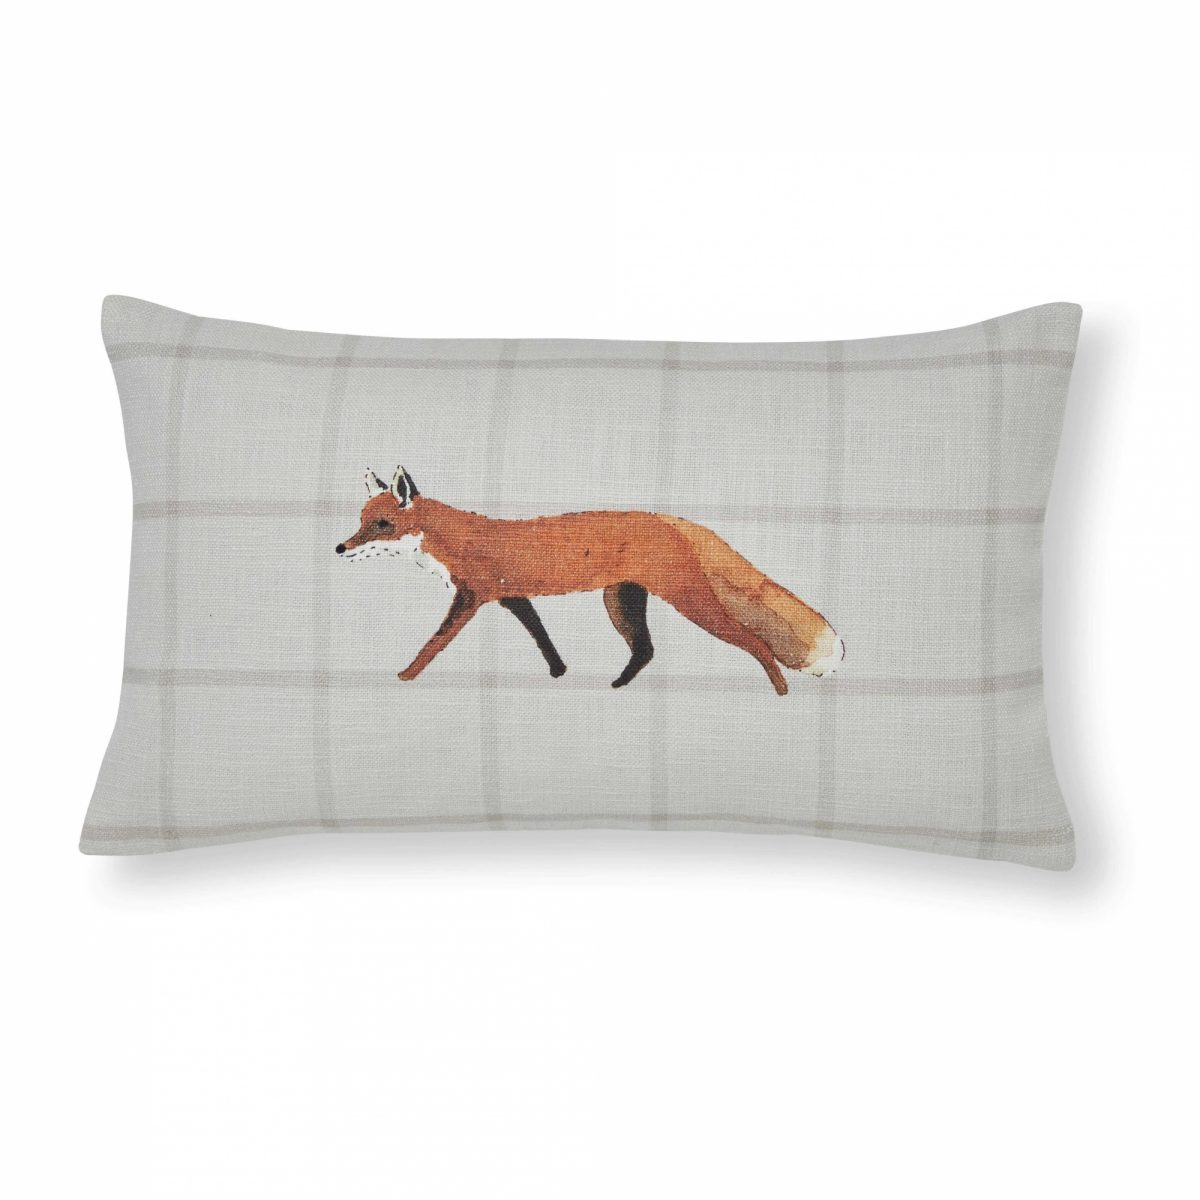 Foxes Cushion email